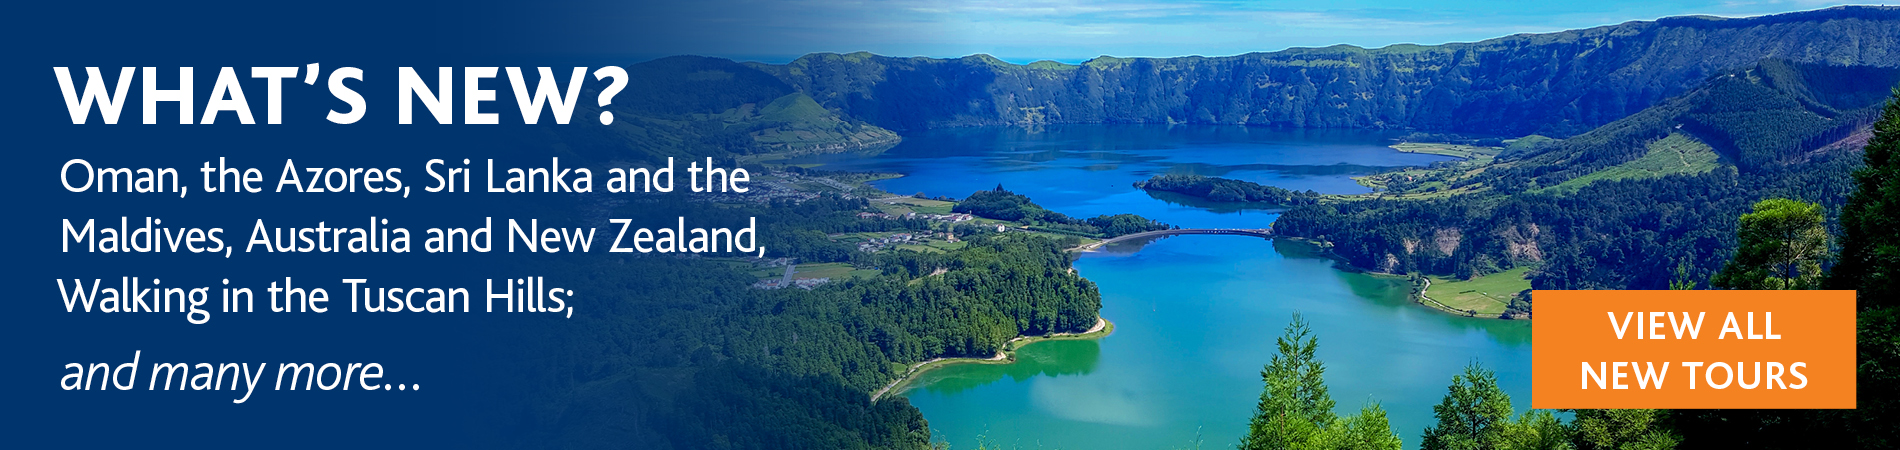 What's New? banner featuring Sete Cidades adjascent lakes green and blue in Ponta Delganda the Azores